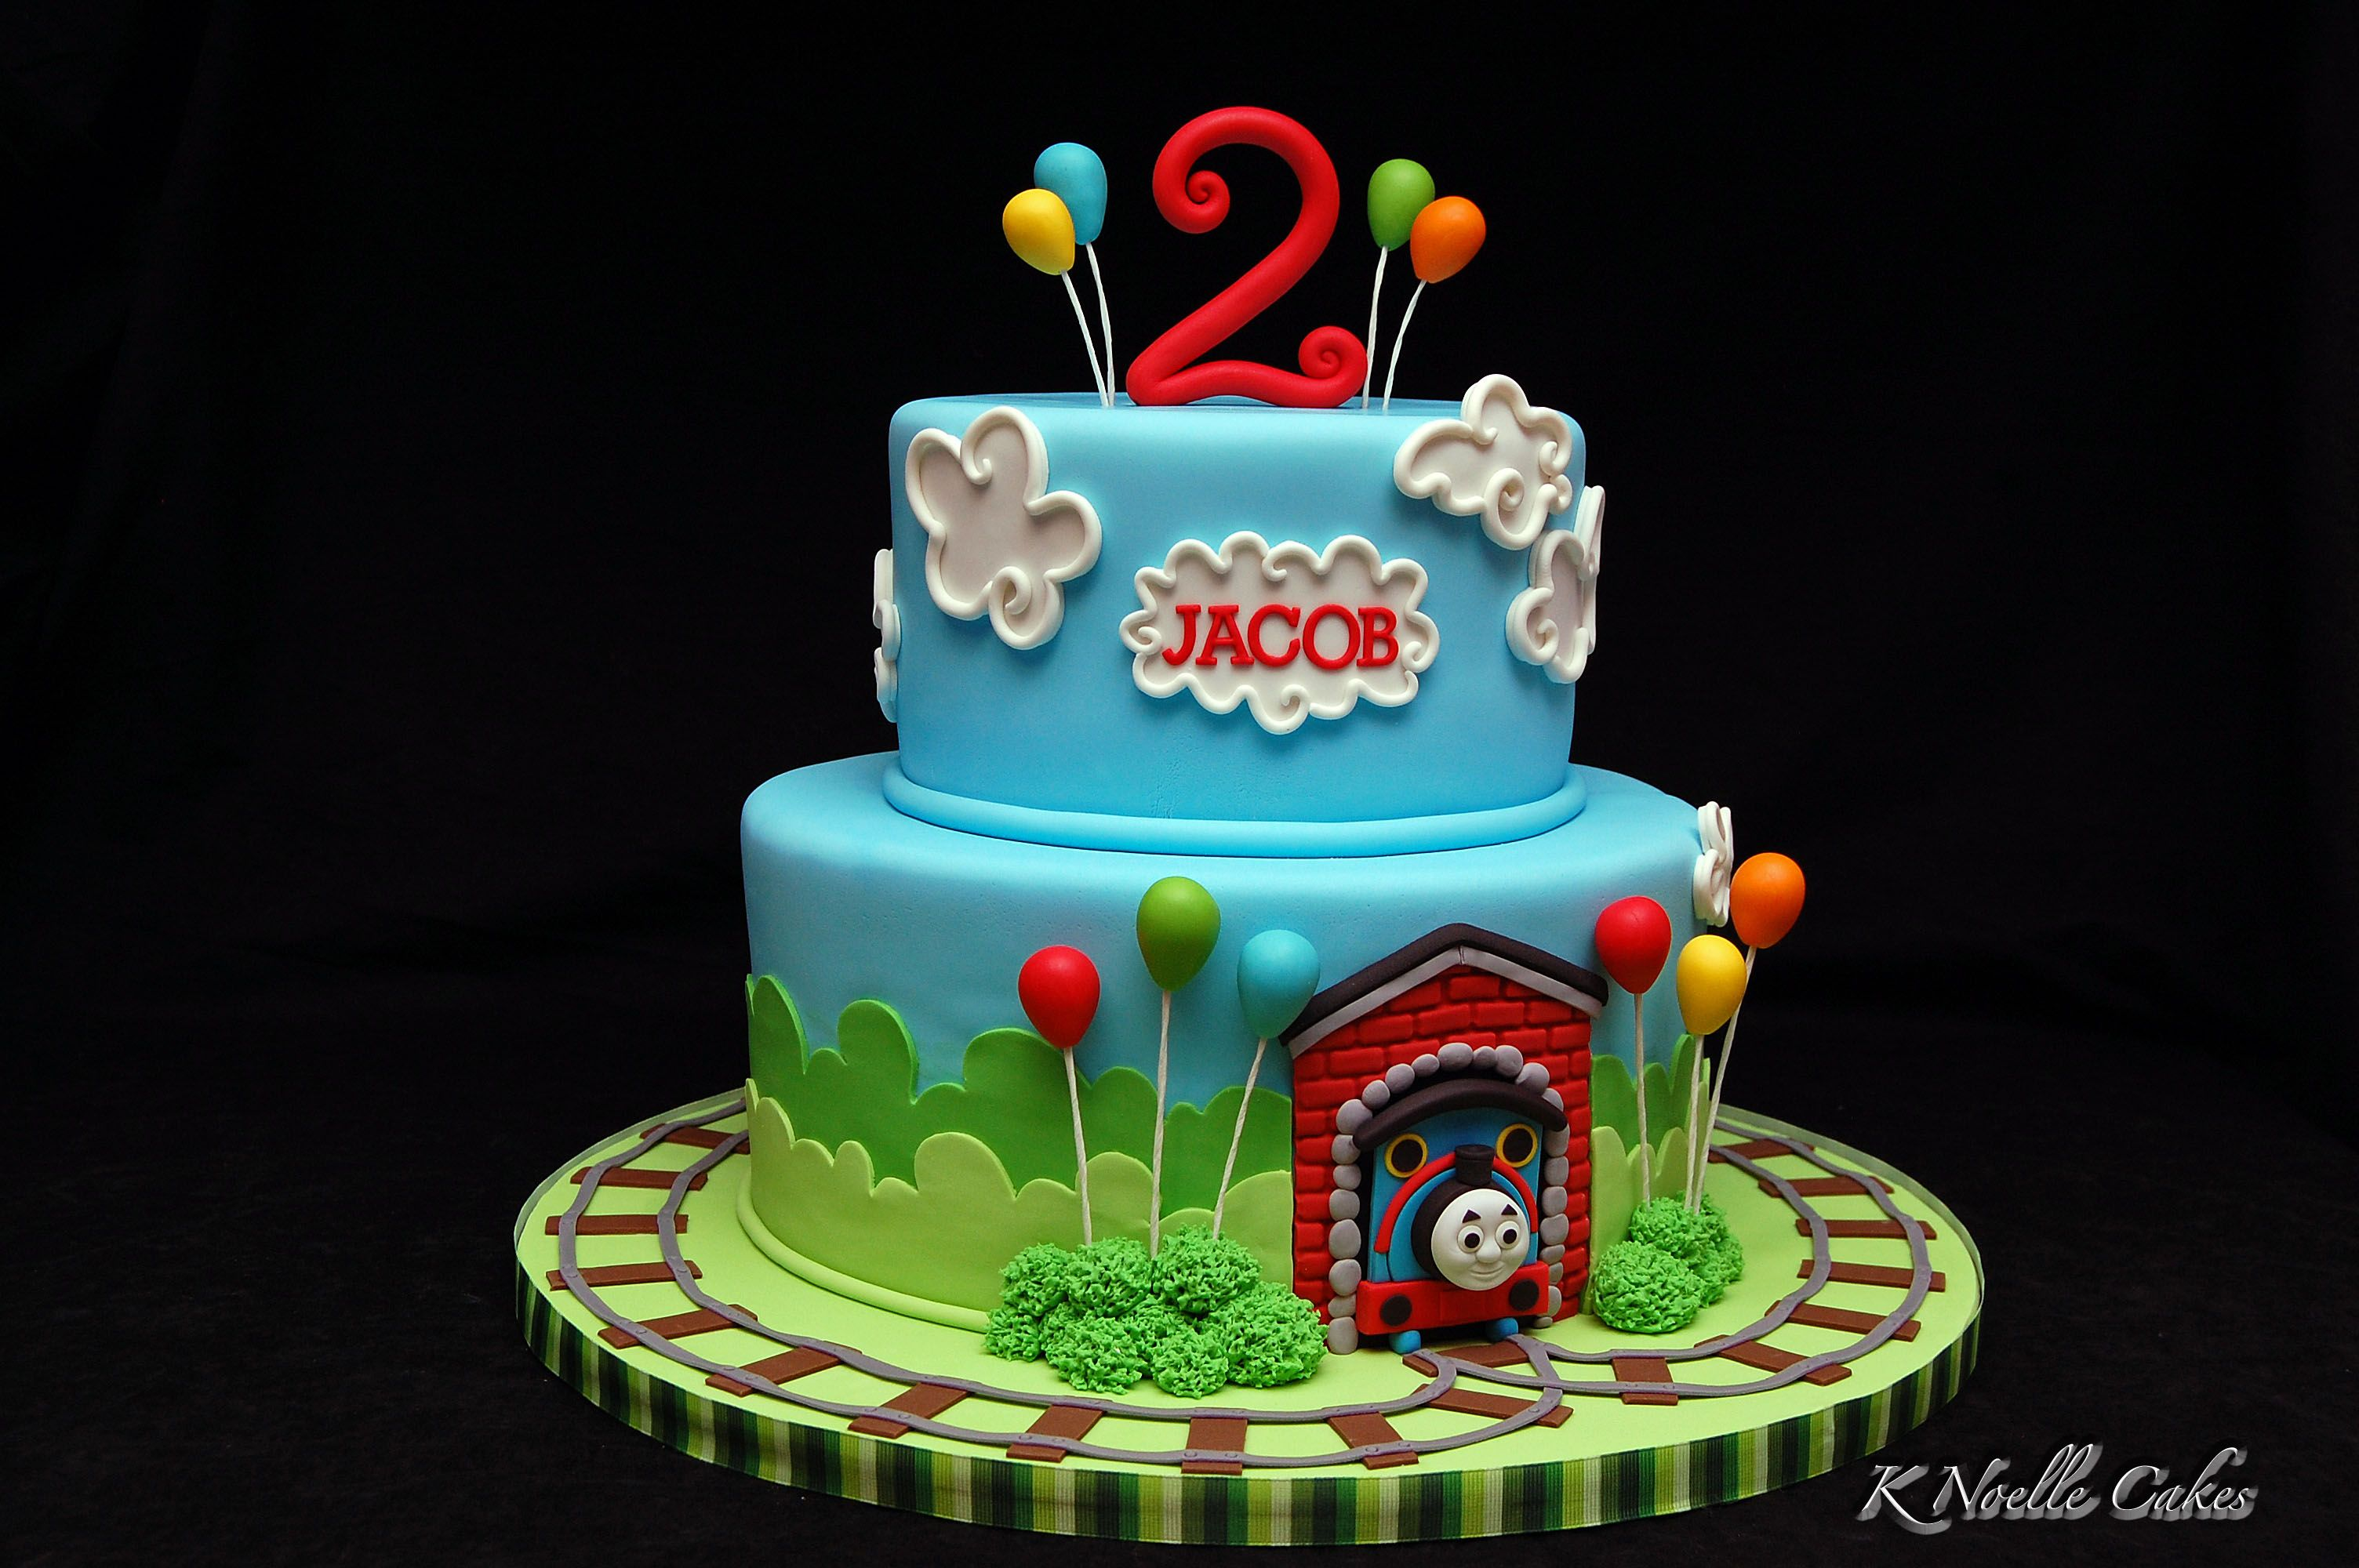 Thomas The Train Cake By K Noelle Cakes Cakes By K